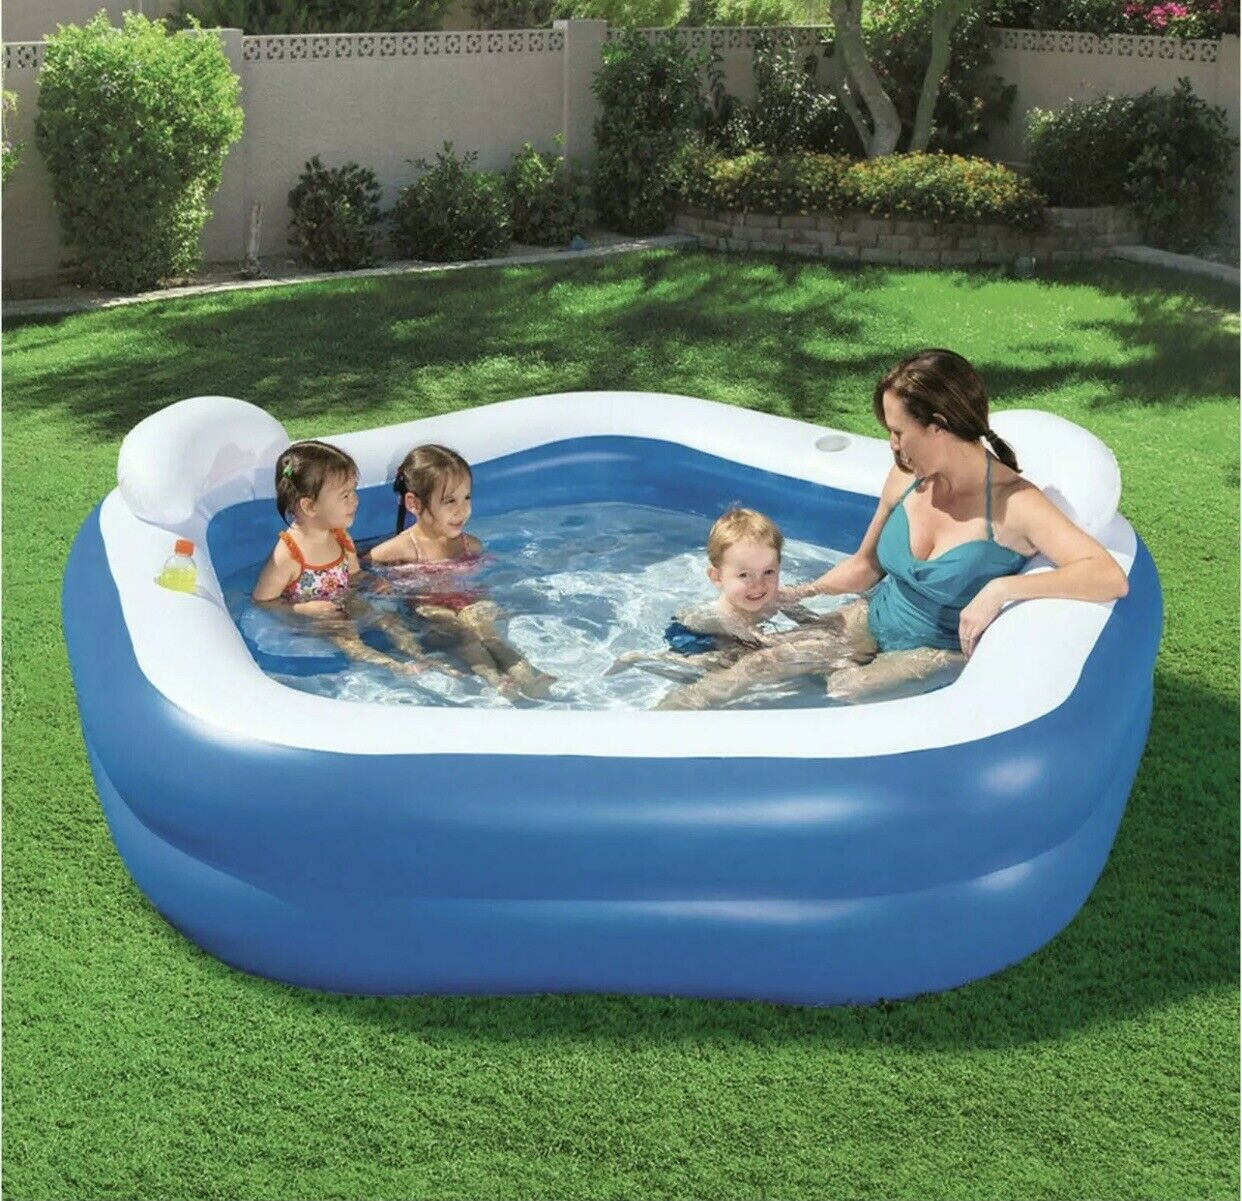 Bestway Inflatable Pentagon Swimming Pool With Paddling Seats | RRP 49.99